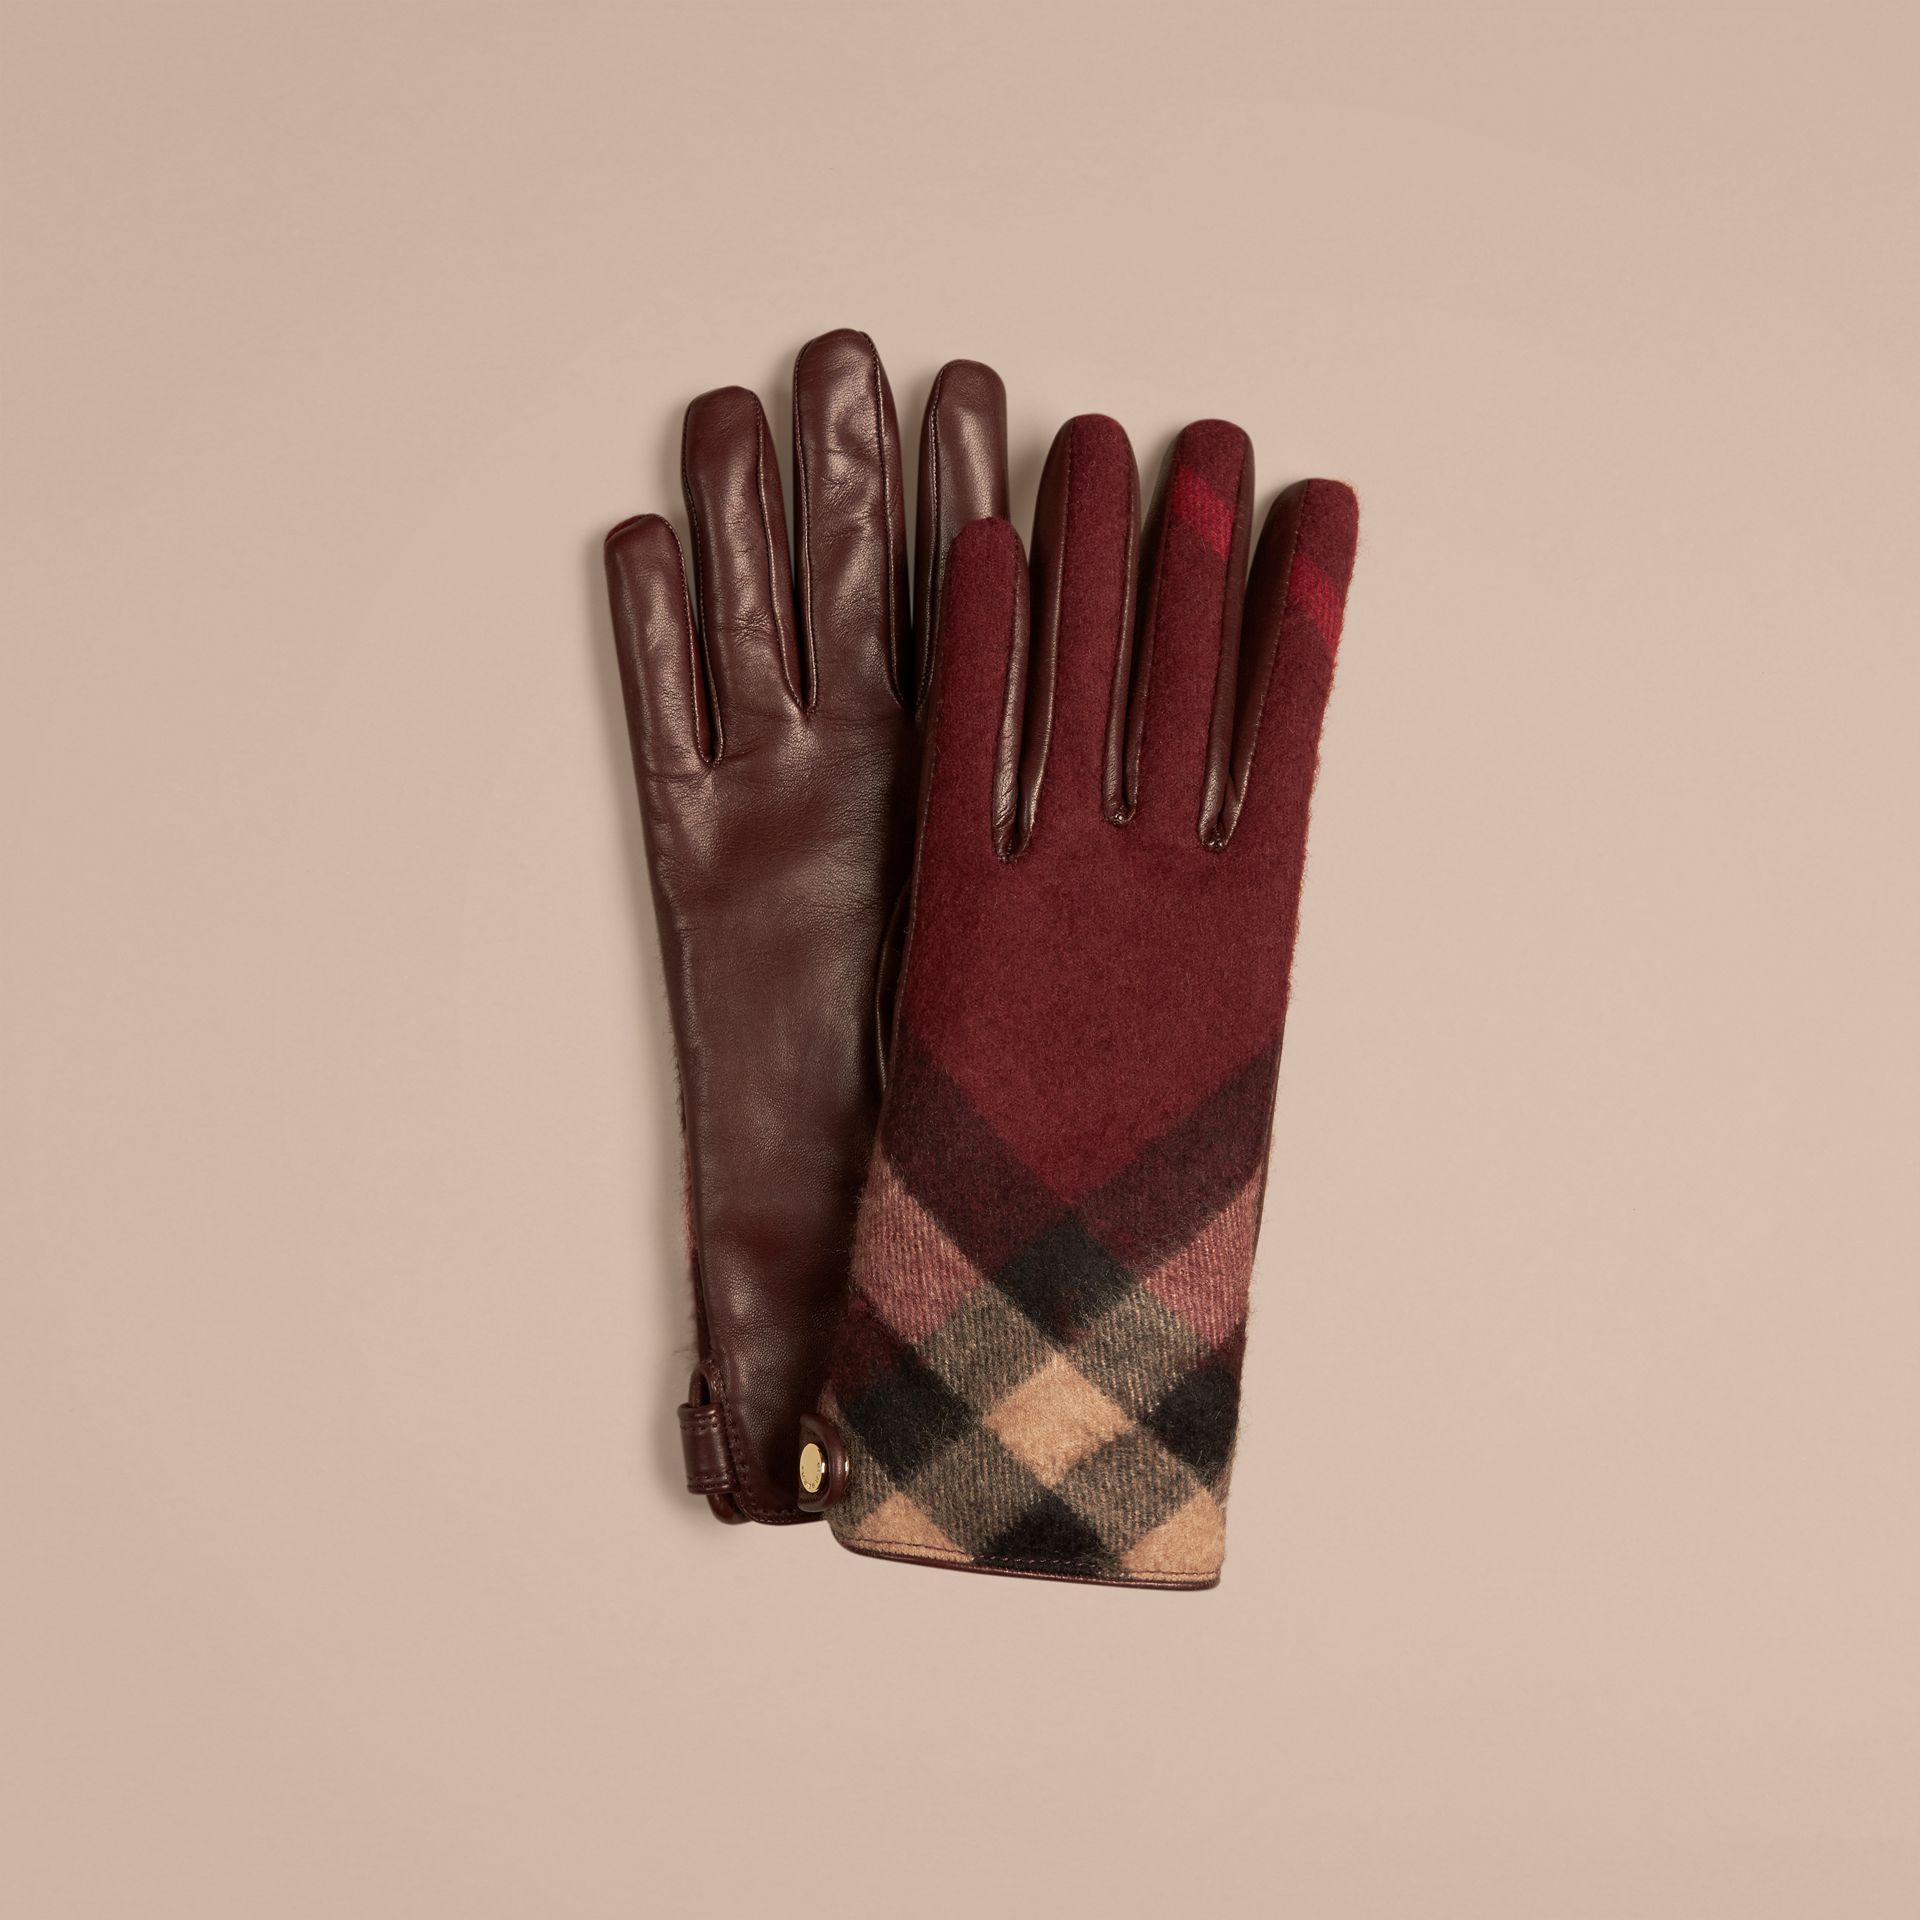 Claret Leather and Check Cashmere Gloves Claret - gallery image 1